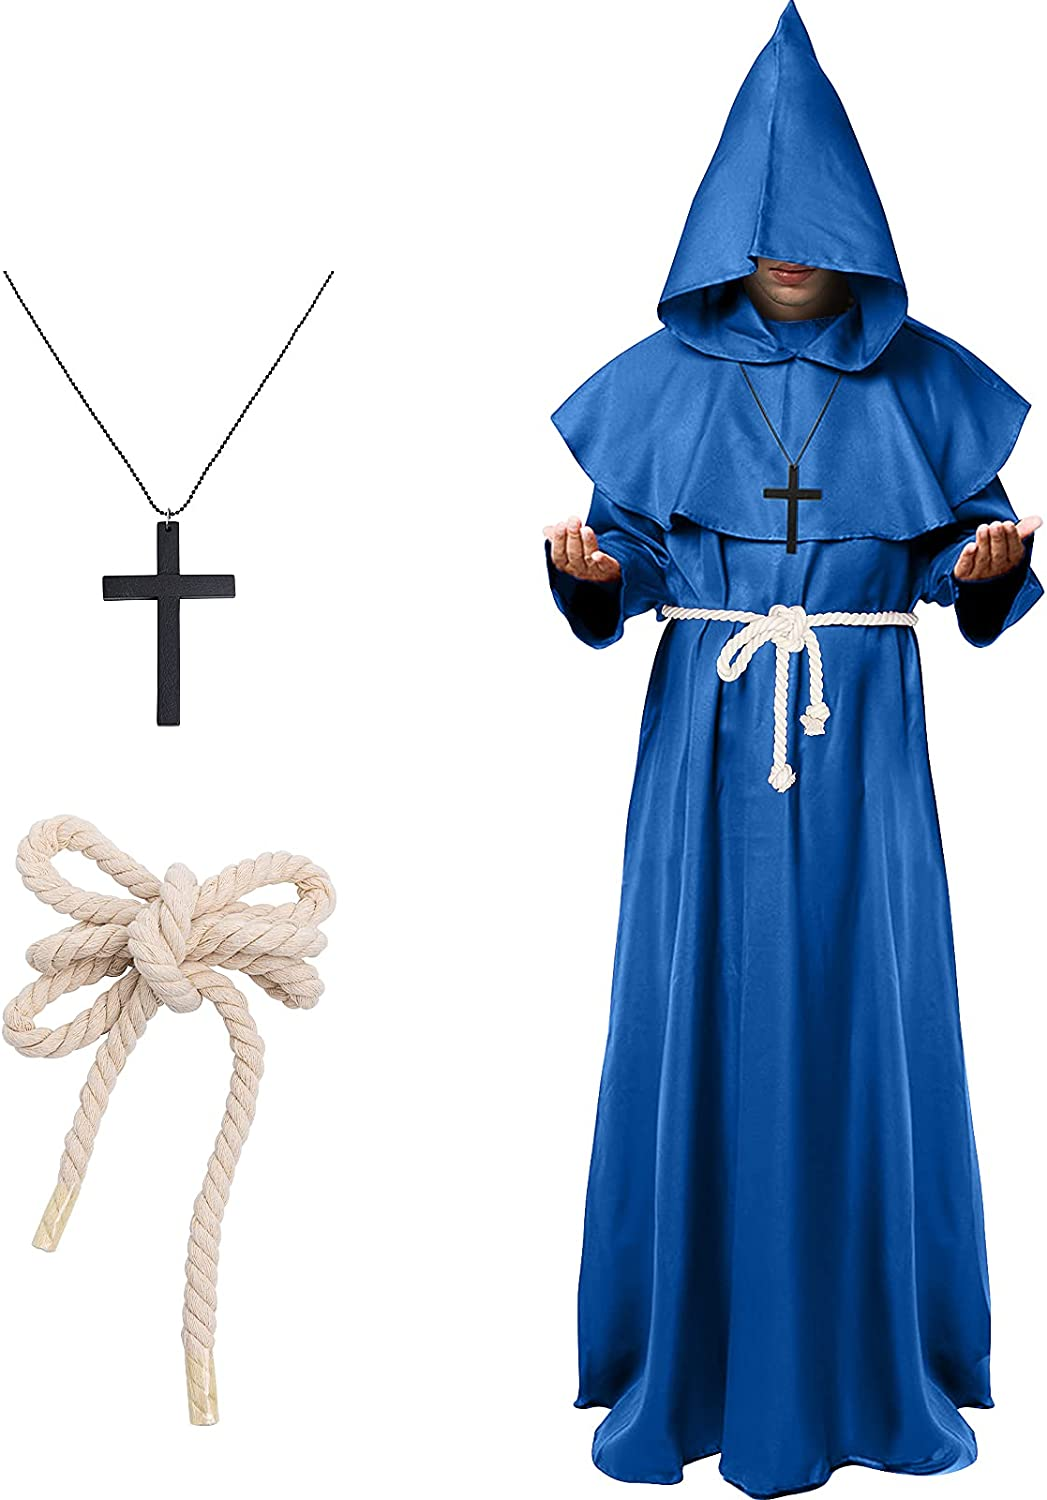 Friar Medieval Renaissance Priest Cheap mail order Max 56% OFF specialty store Monk Cos Hooded Robe Halloween